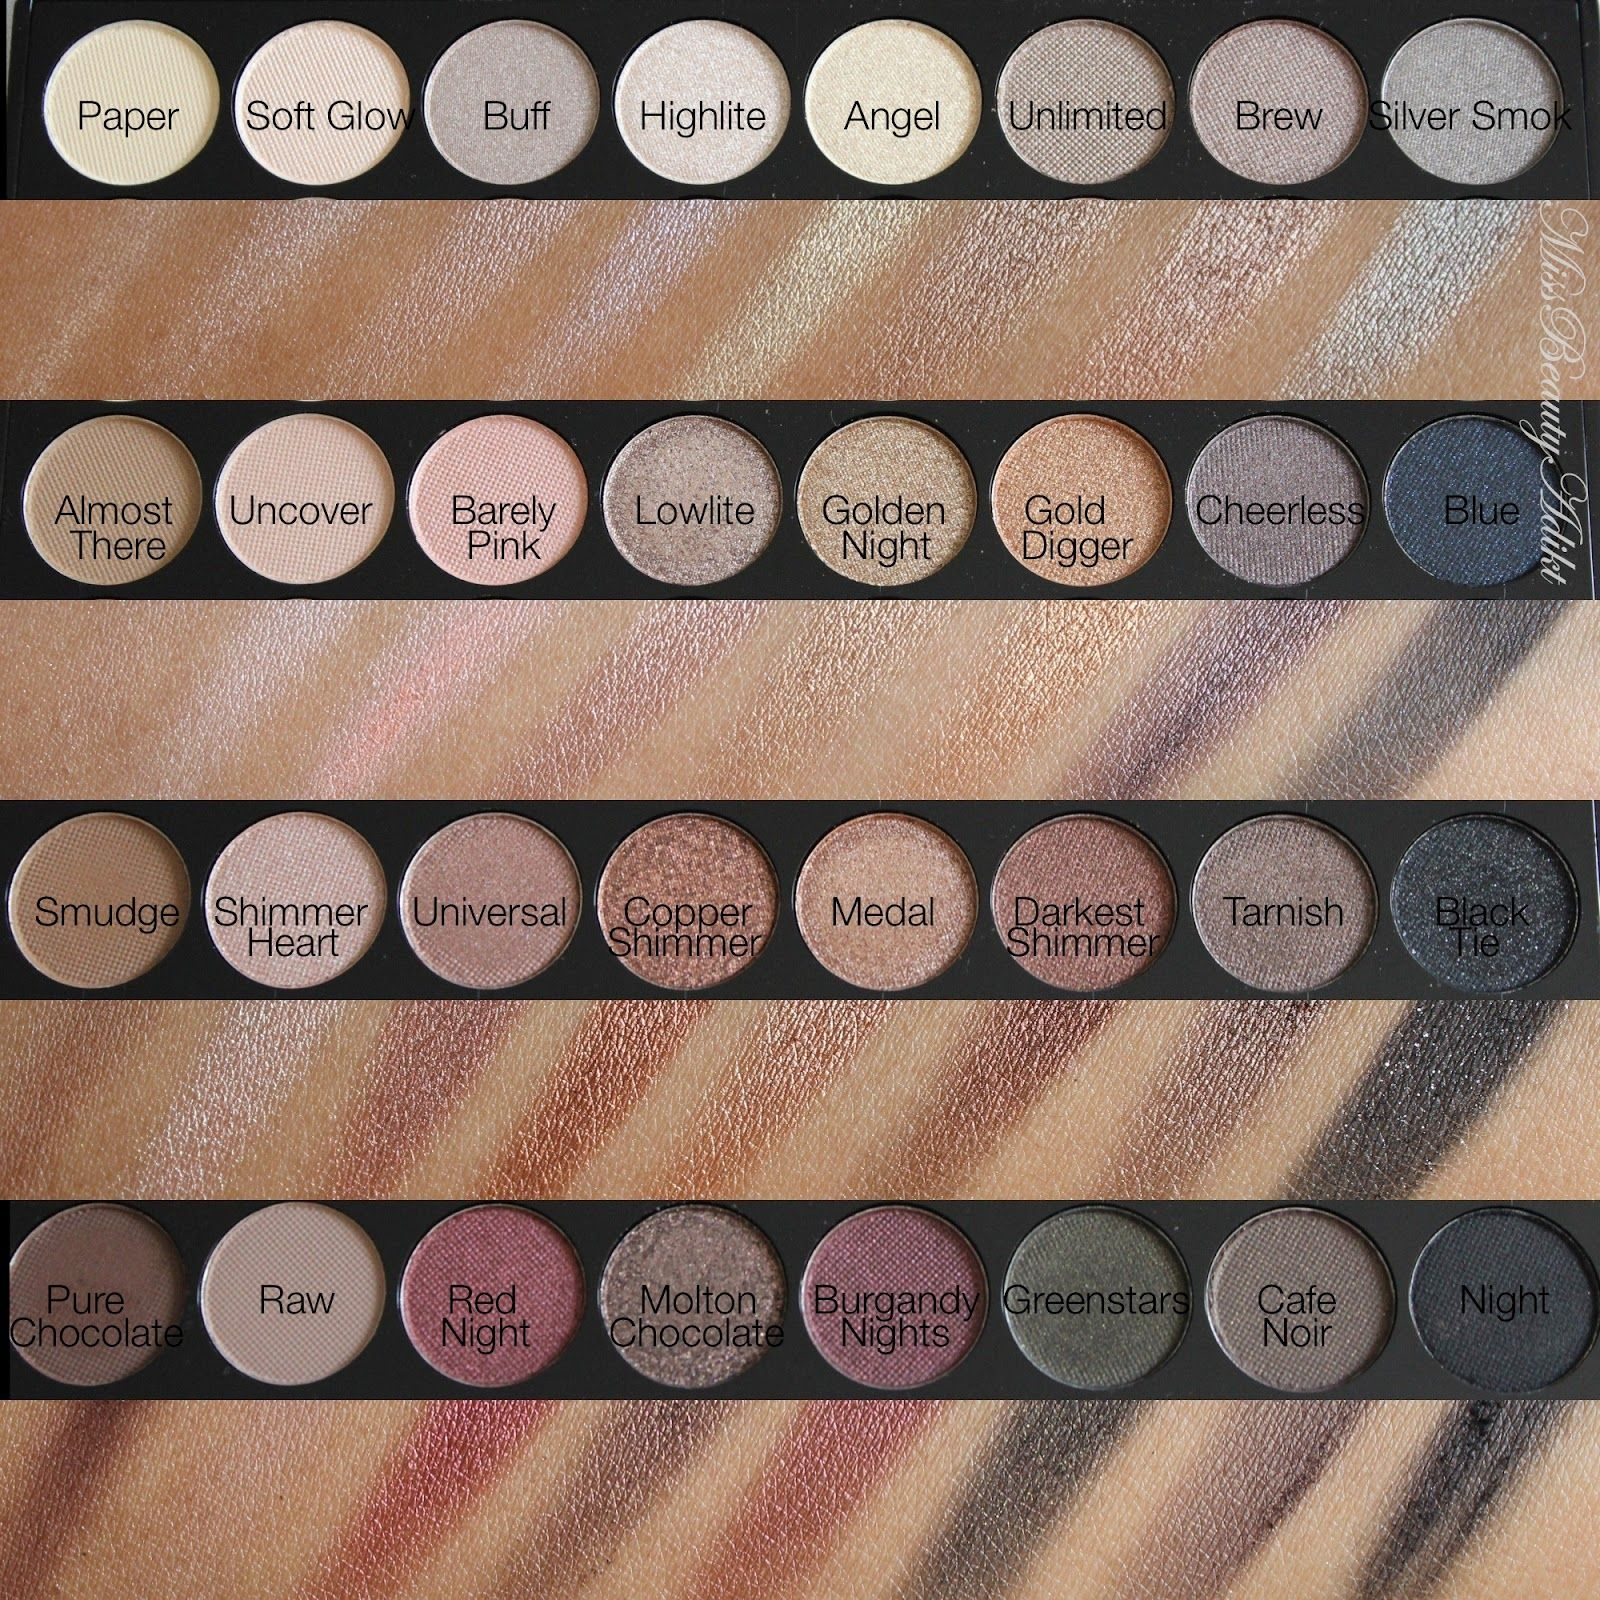 M I S S B E A U T Y A D I K T: Makeup Revolution Ultra 32 Eyeshadow Palette in Flawless Review + Swatches